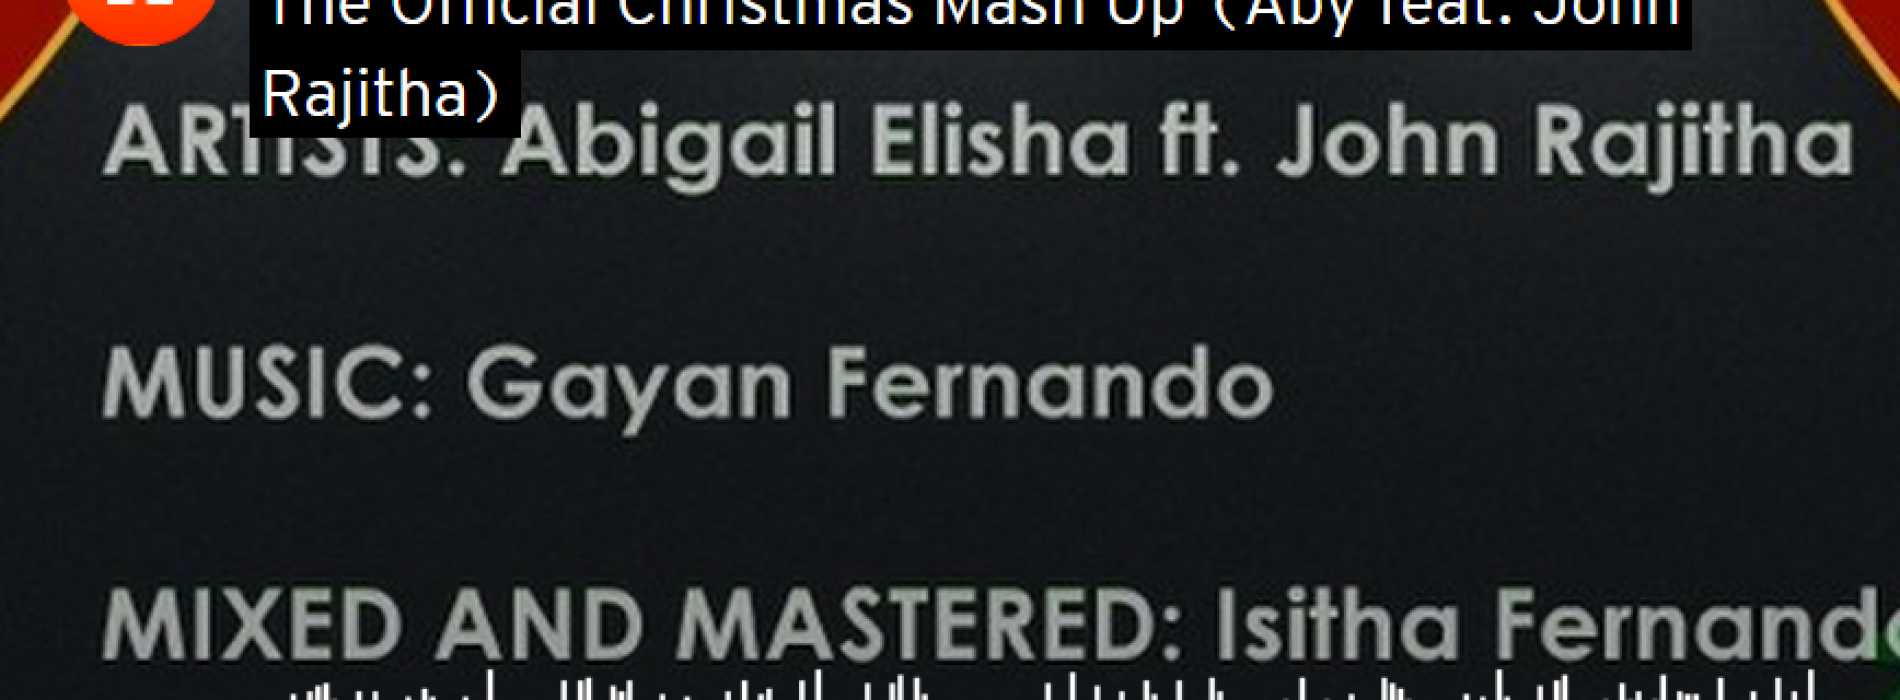 Aby feat. John Rajitha: The Official Christmas Mash-Up